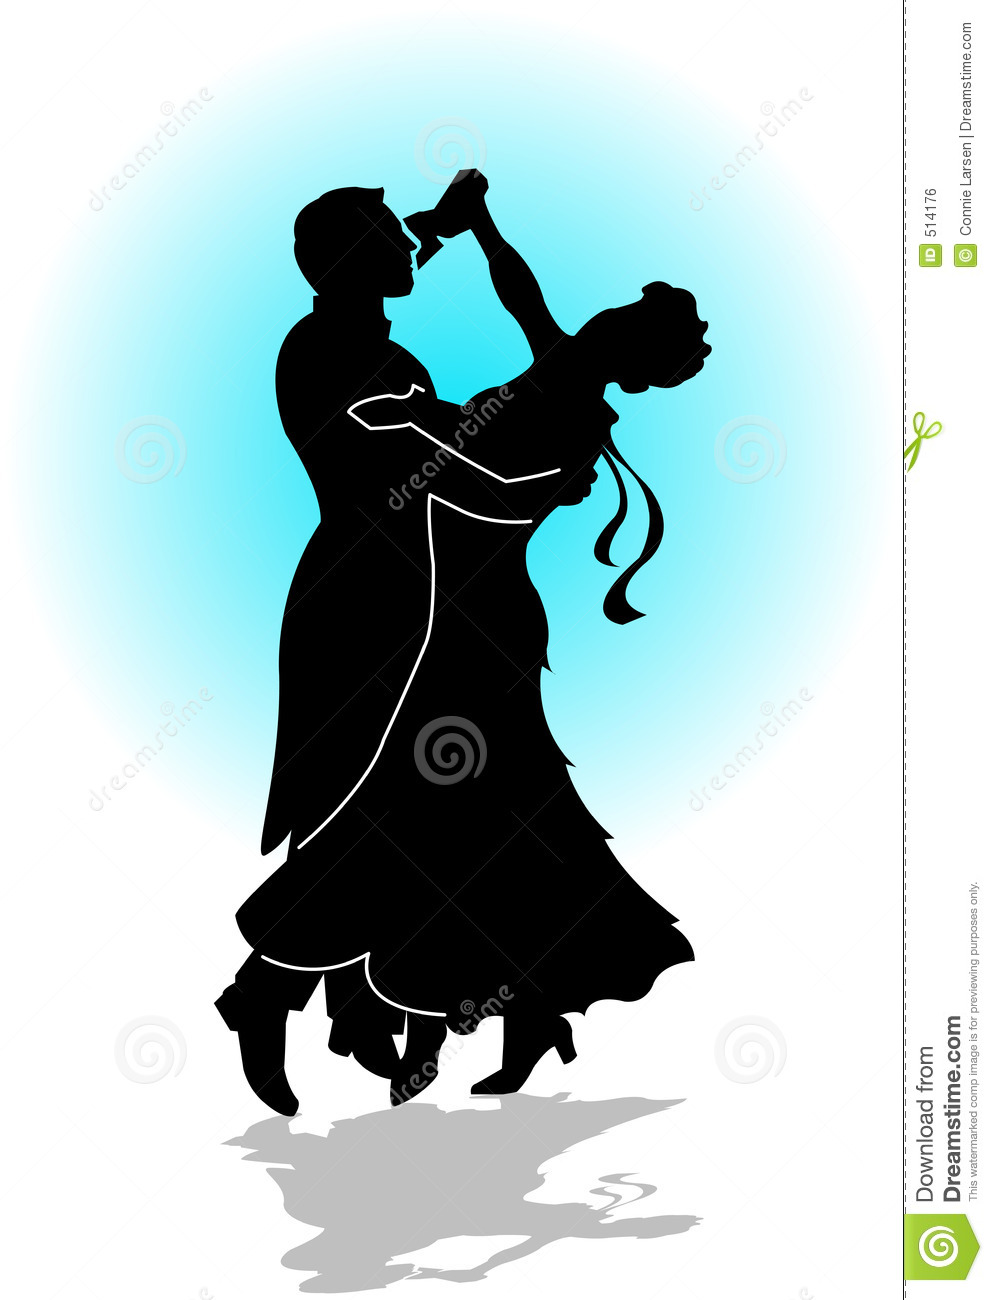 Image Result For Royalty Free Music Waltz